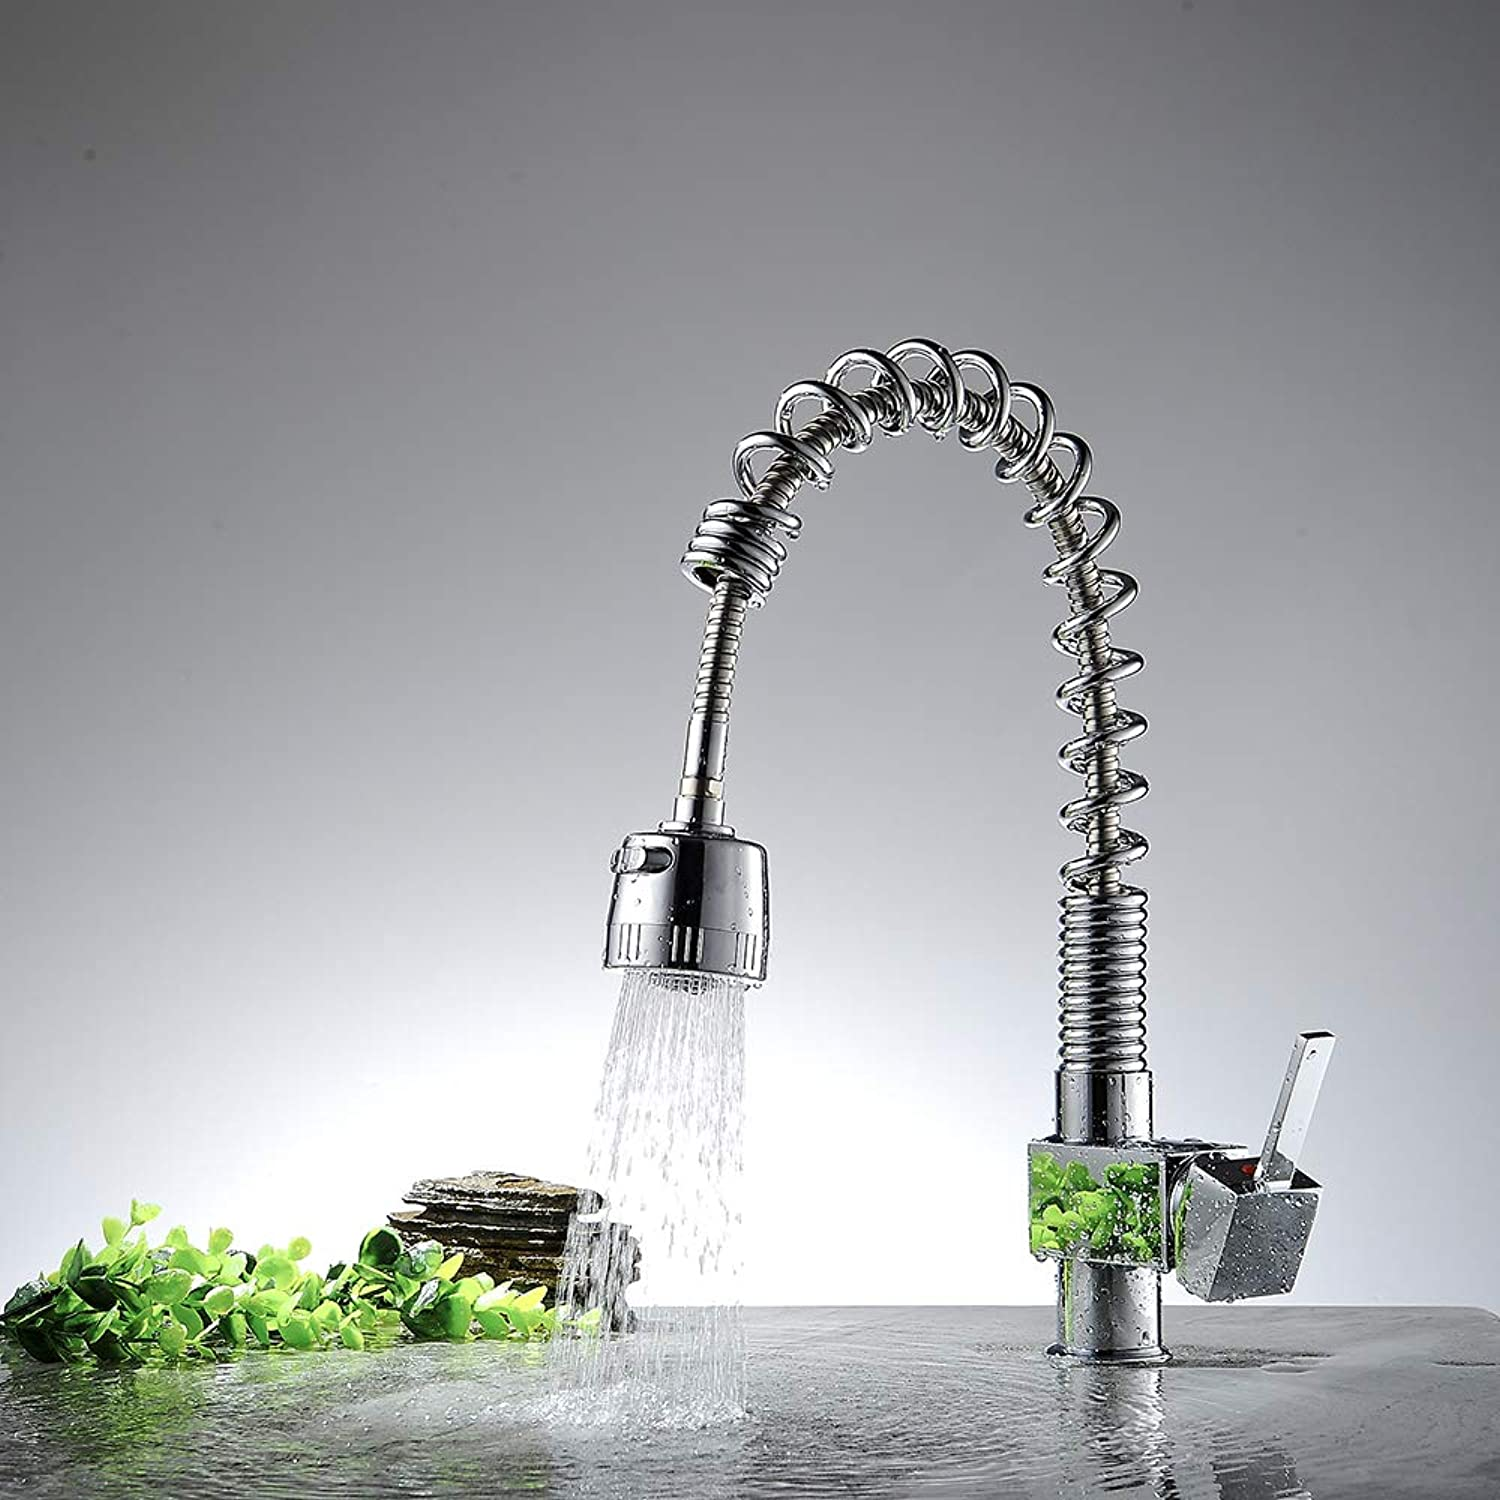 Faucet, Kitchen Faucet Faucet Chrome Sink, Spring Pull Faucet Basin Faucet Hot And Cold Water Faucet